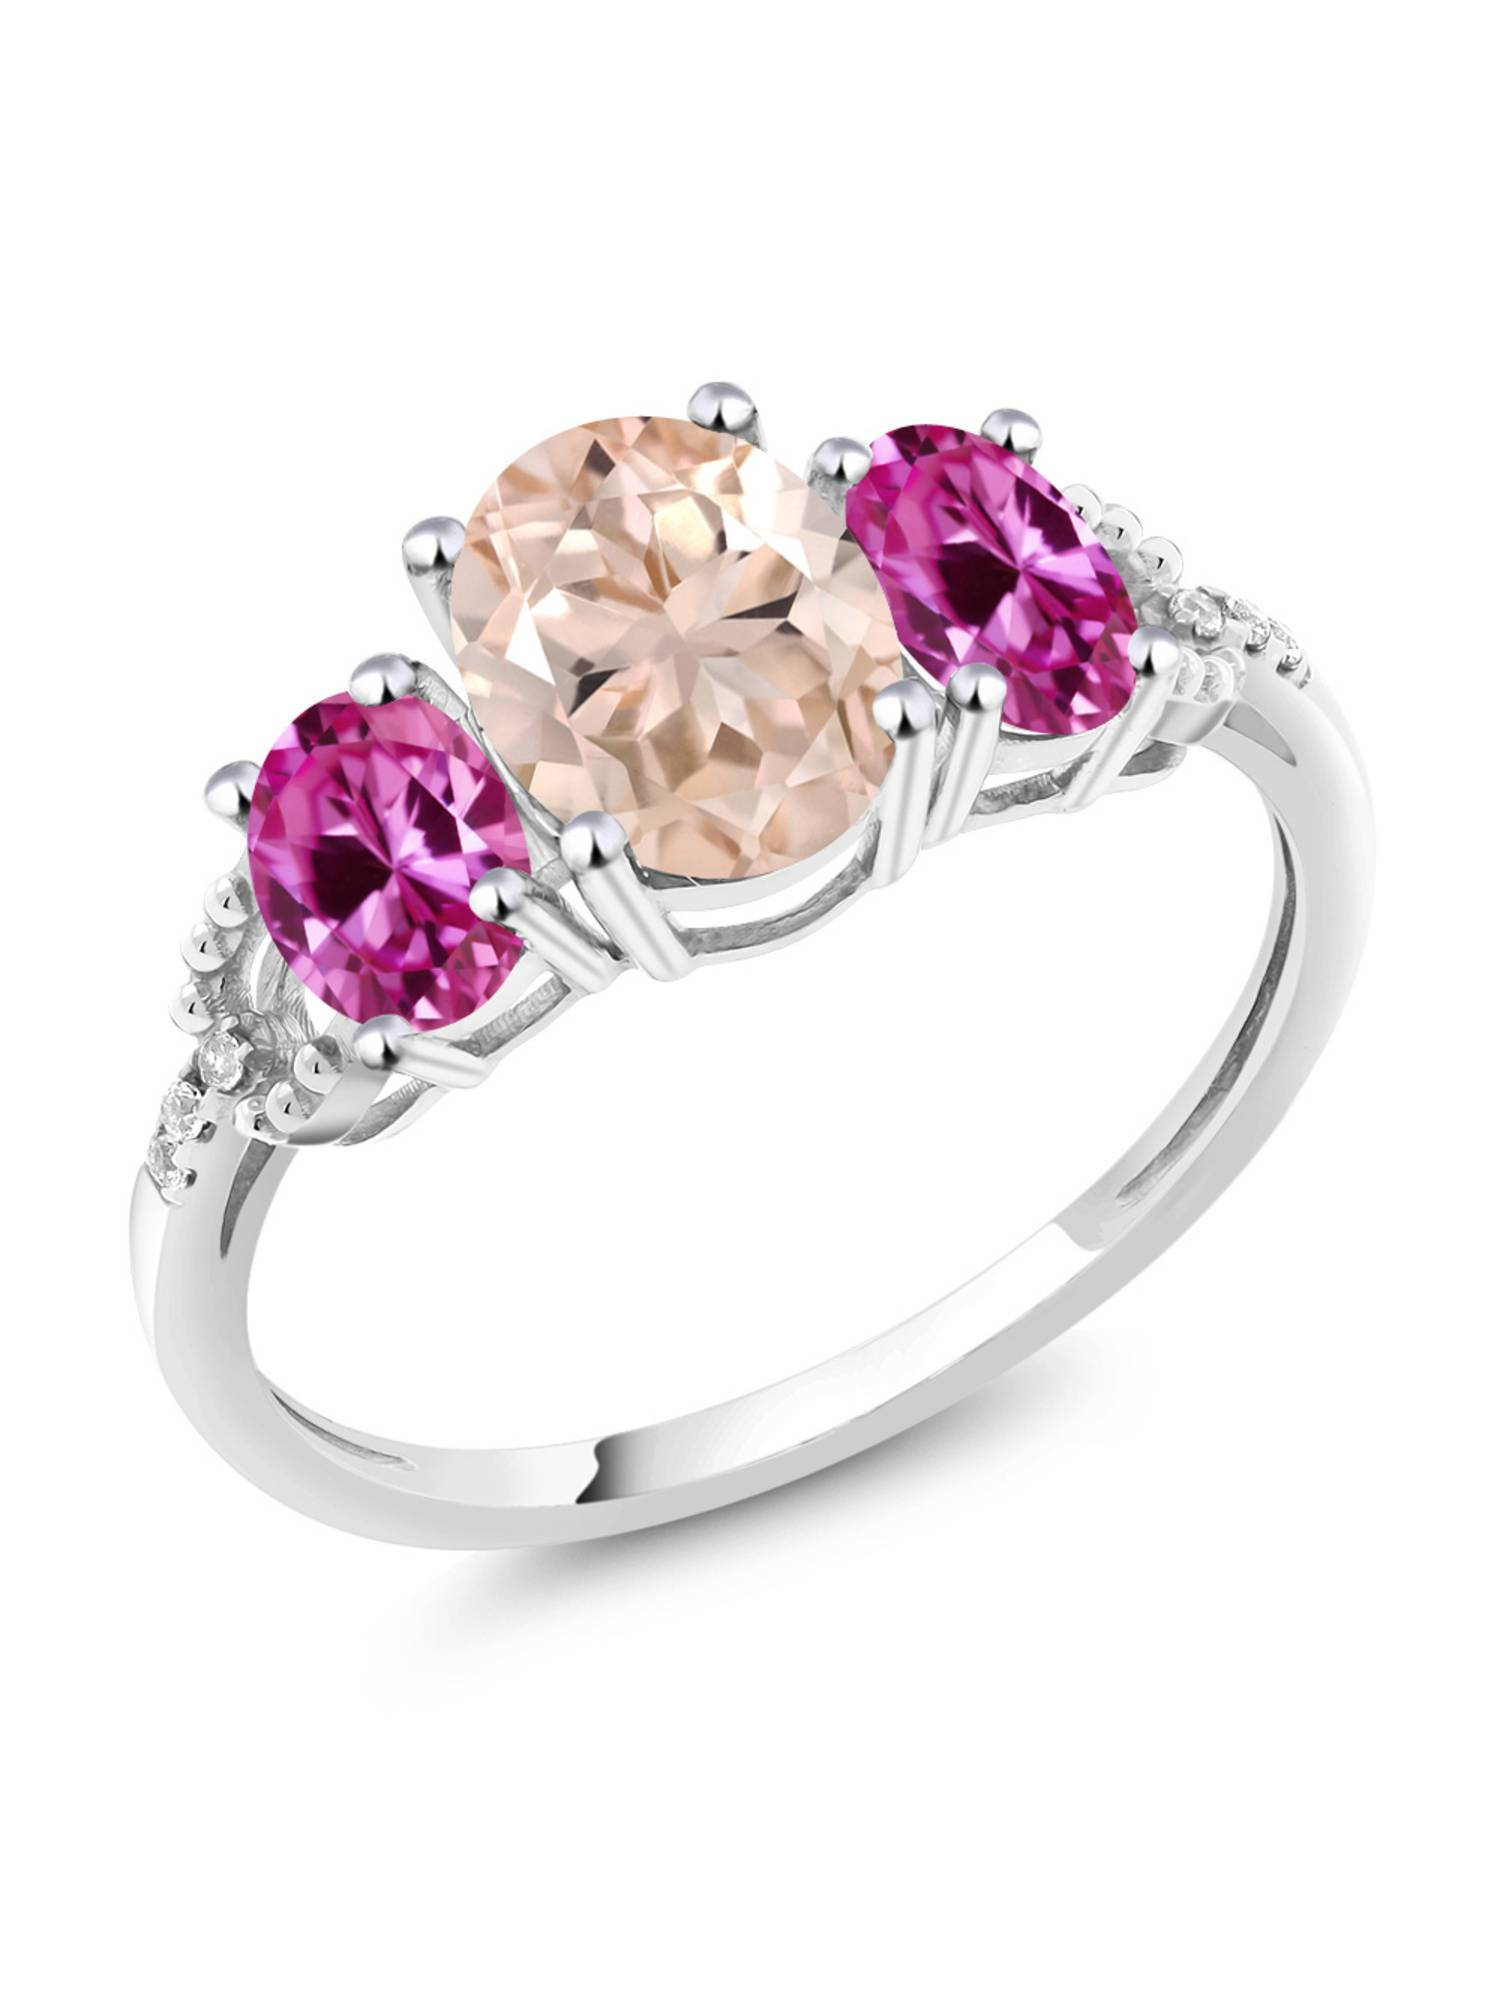 10K White Gold Diamond Accent Three-Stone Engagement Ring set with 2.05 Ct Peach Morganite Pink Created Sapphire by